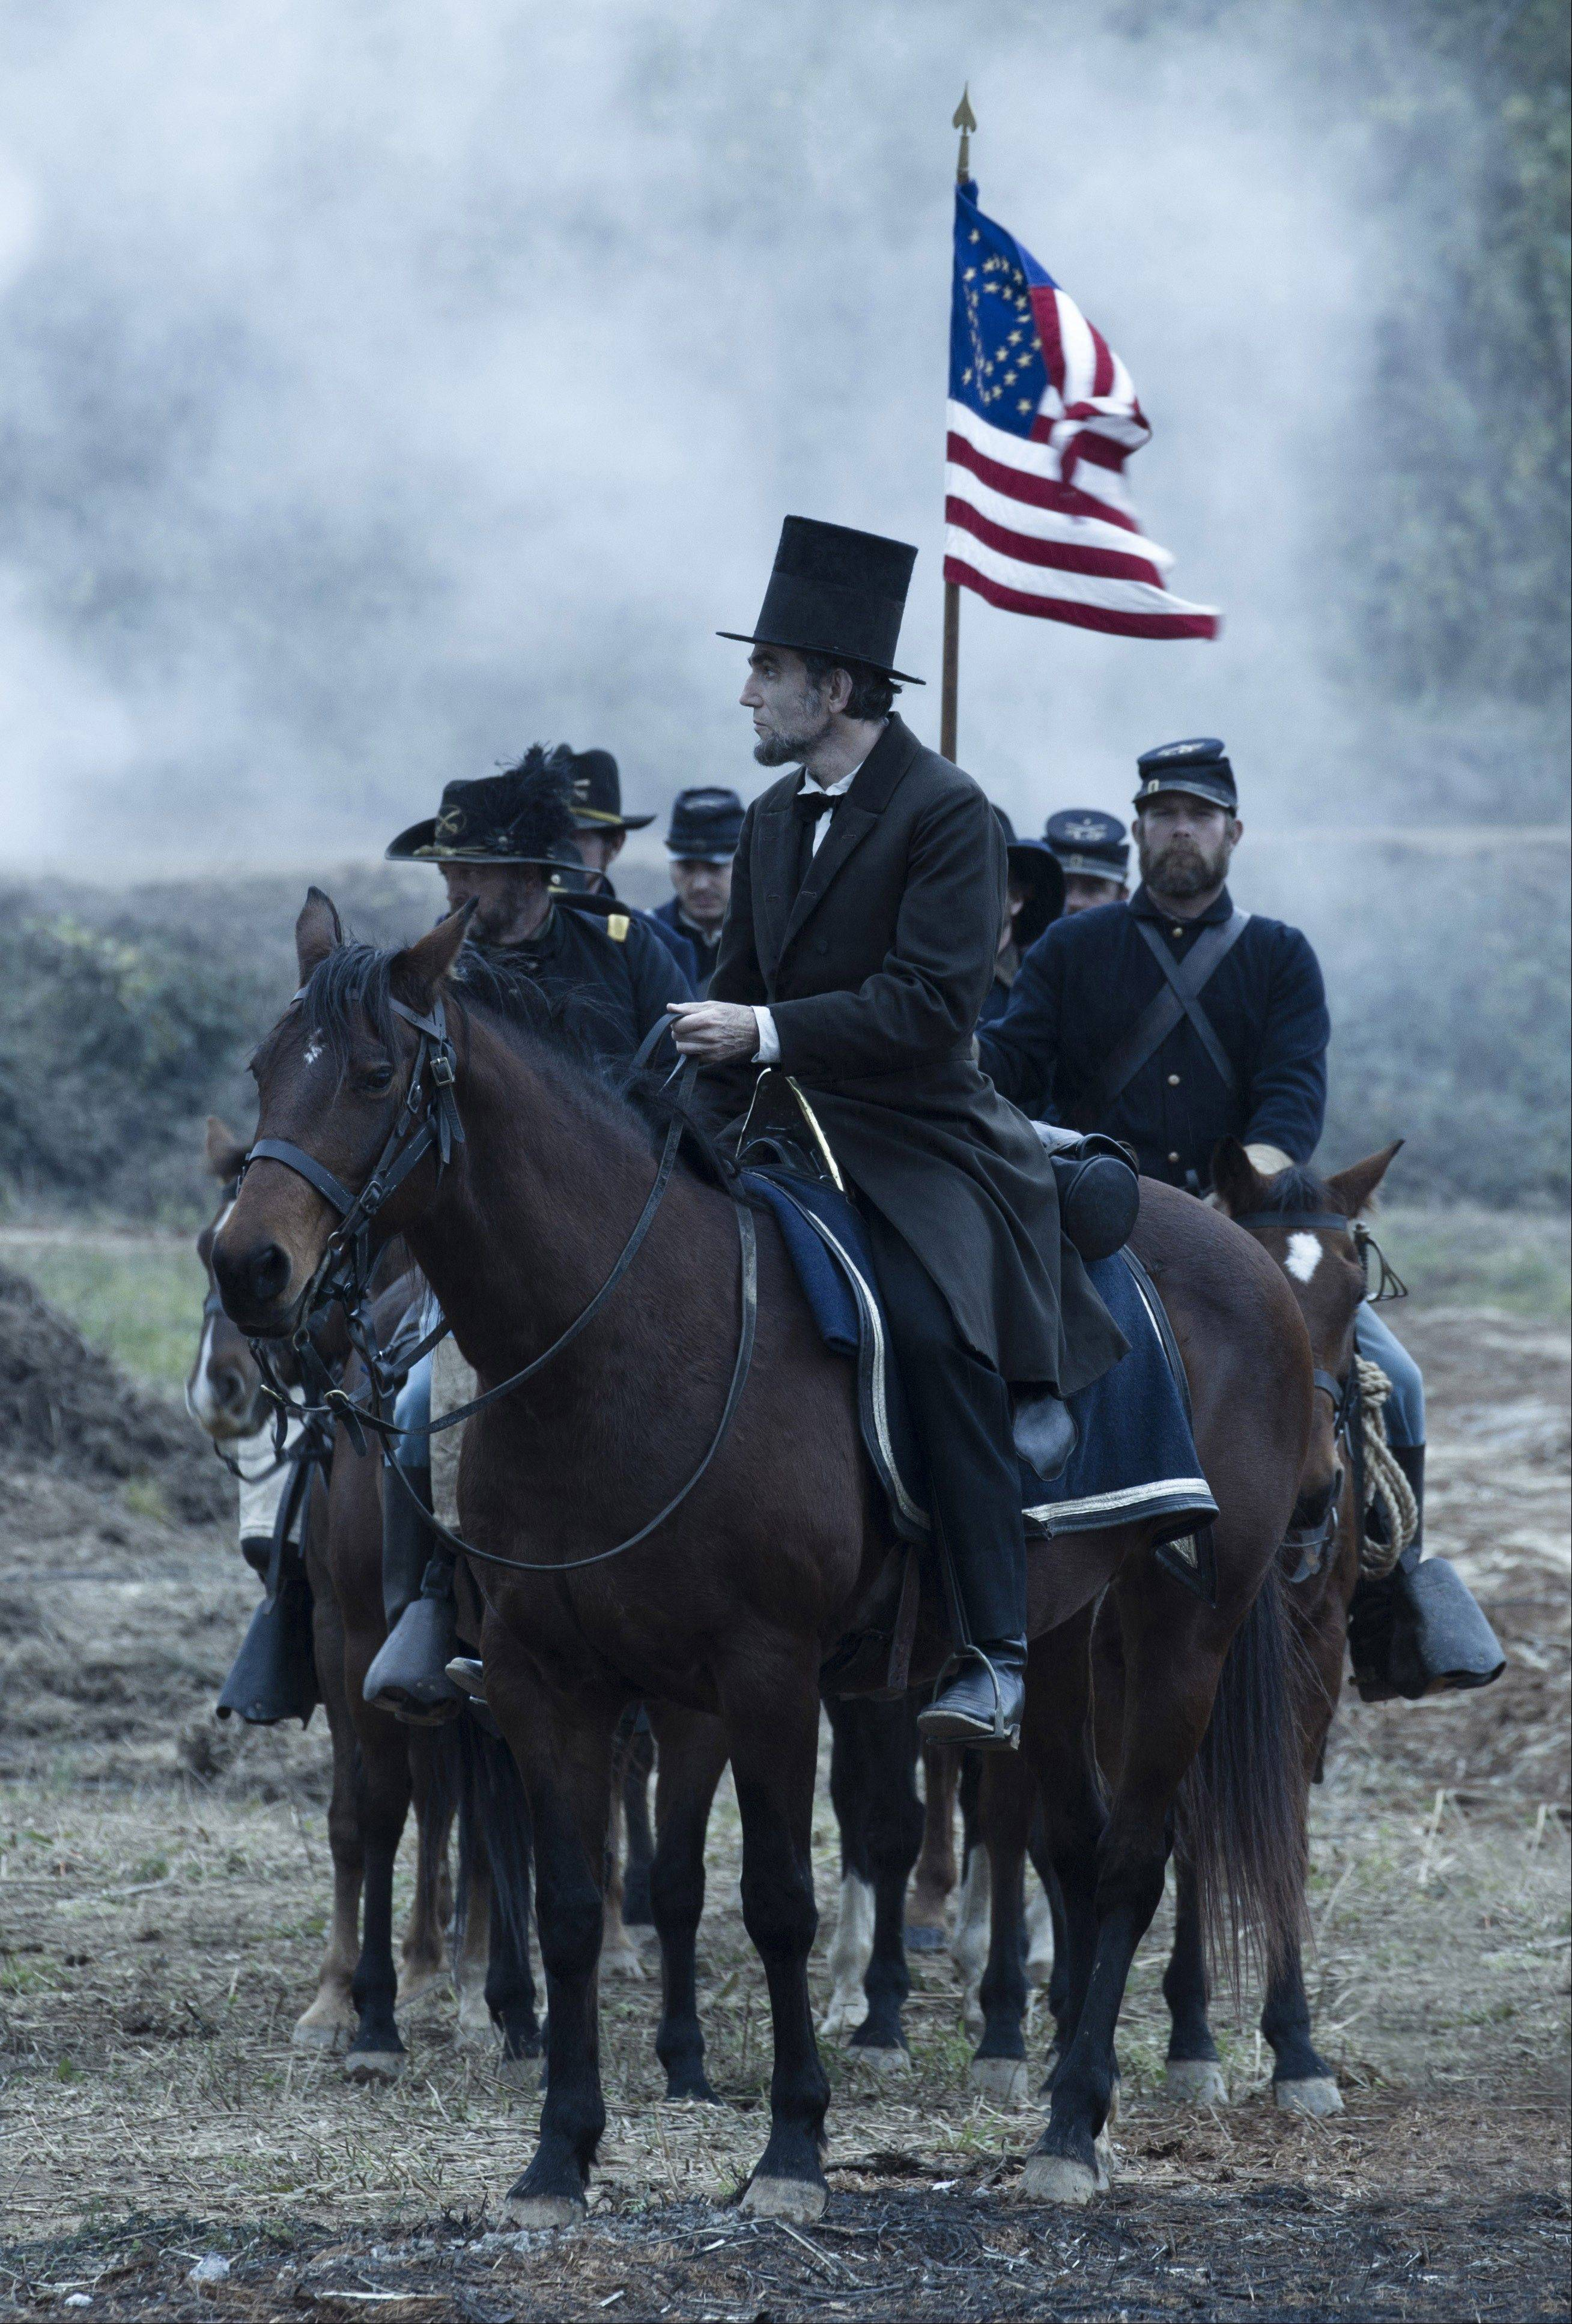 Daniel Day-Lewis' performance outshines Spielberg's direction in 'Lincoln'